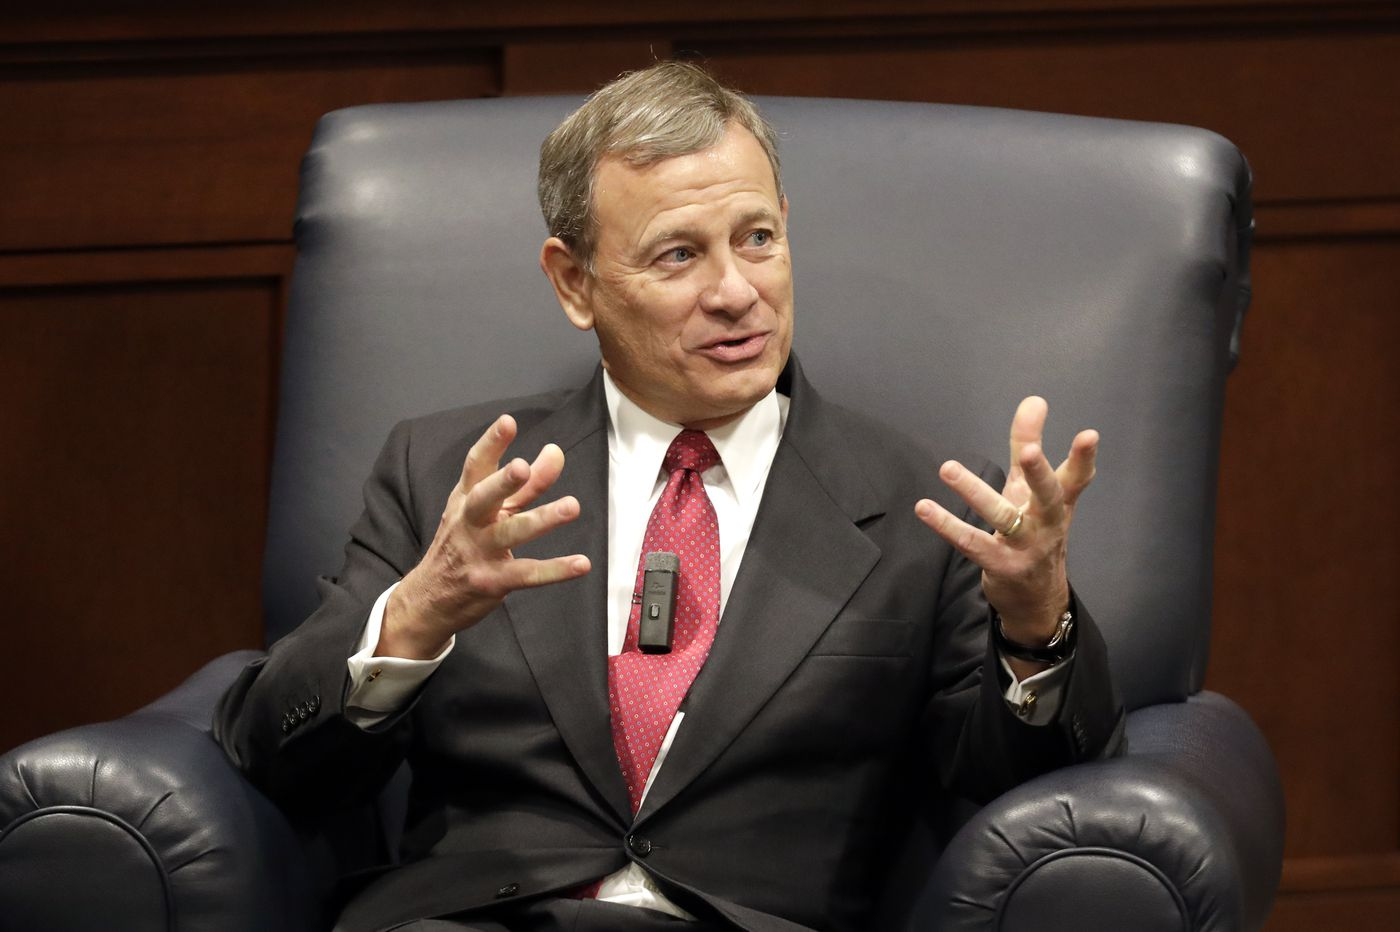 John Roberts isn't yet ready to 'jolt' the legal system on abortion | Opinion